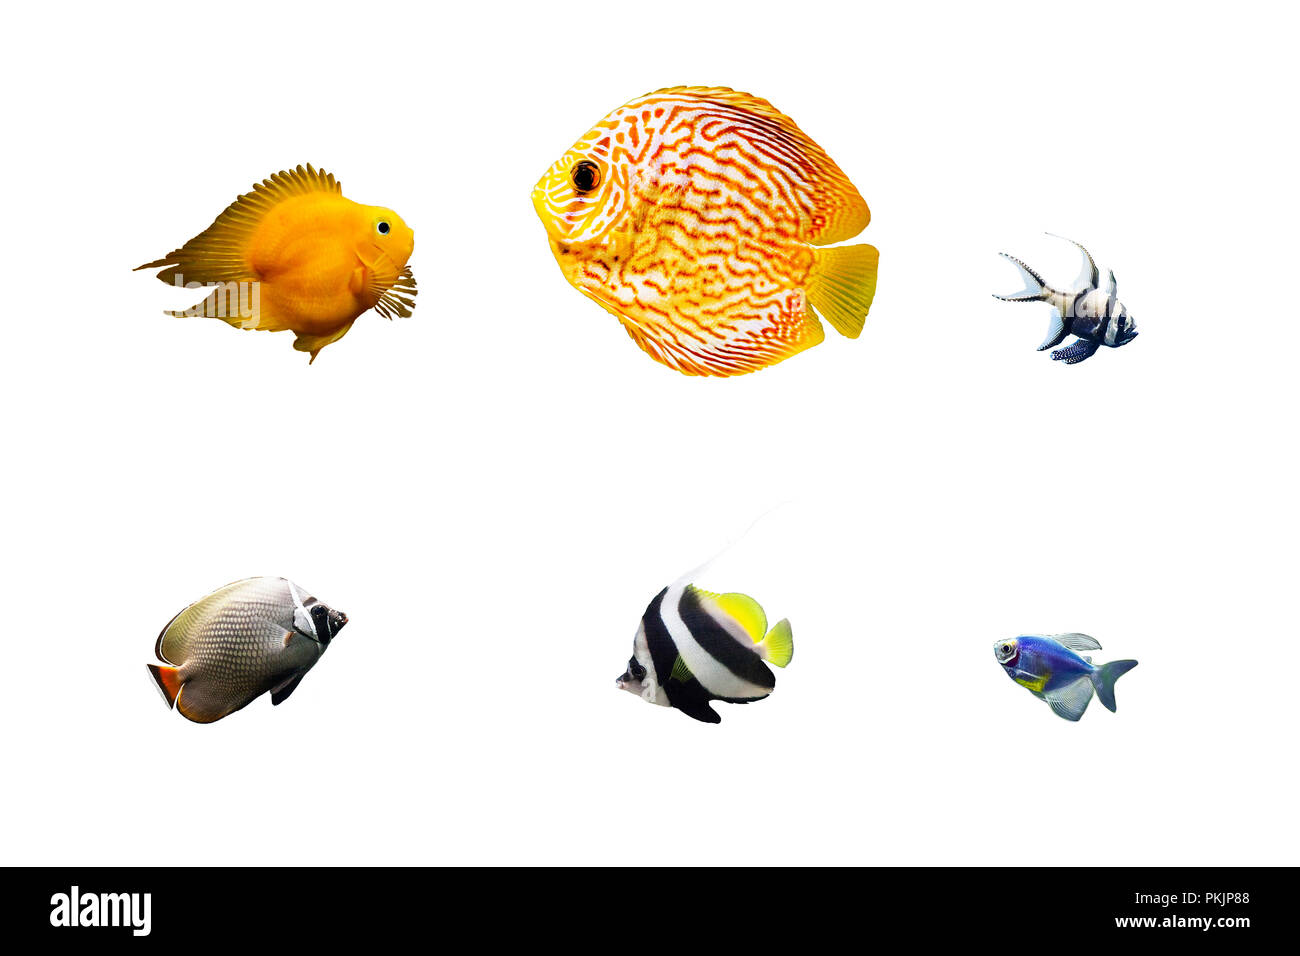 Set of colorful tropical fish isolated on white background. Cichlid, pompadour, cardinalfish, butterflyfish, longfin bannerfish or pennant coralfish,  - Stock Image